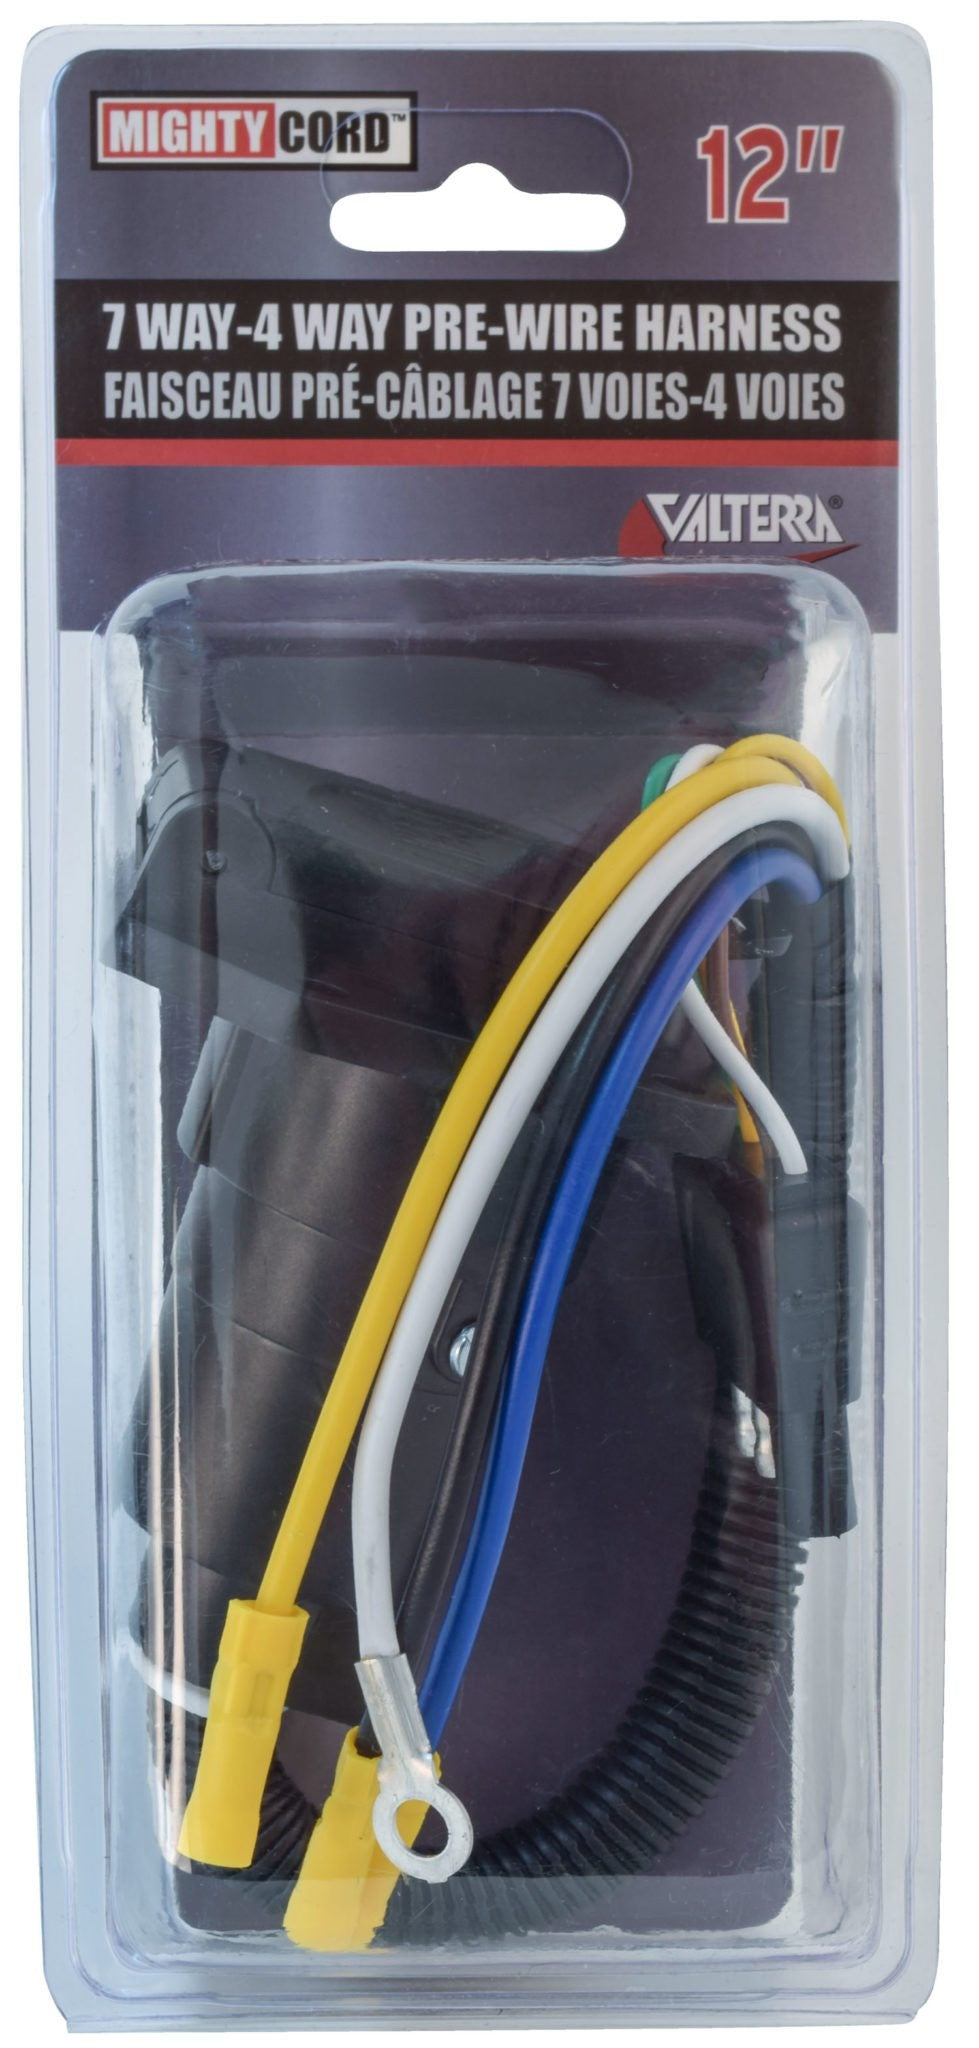 Mighty Cord 7-Way to 4-Way Pre-Wire Harness - 12""